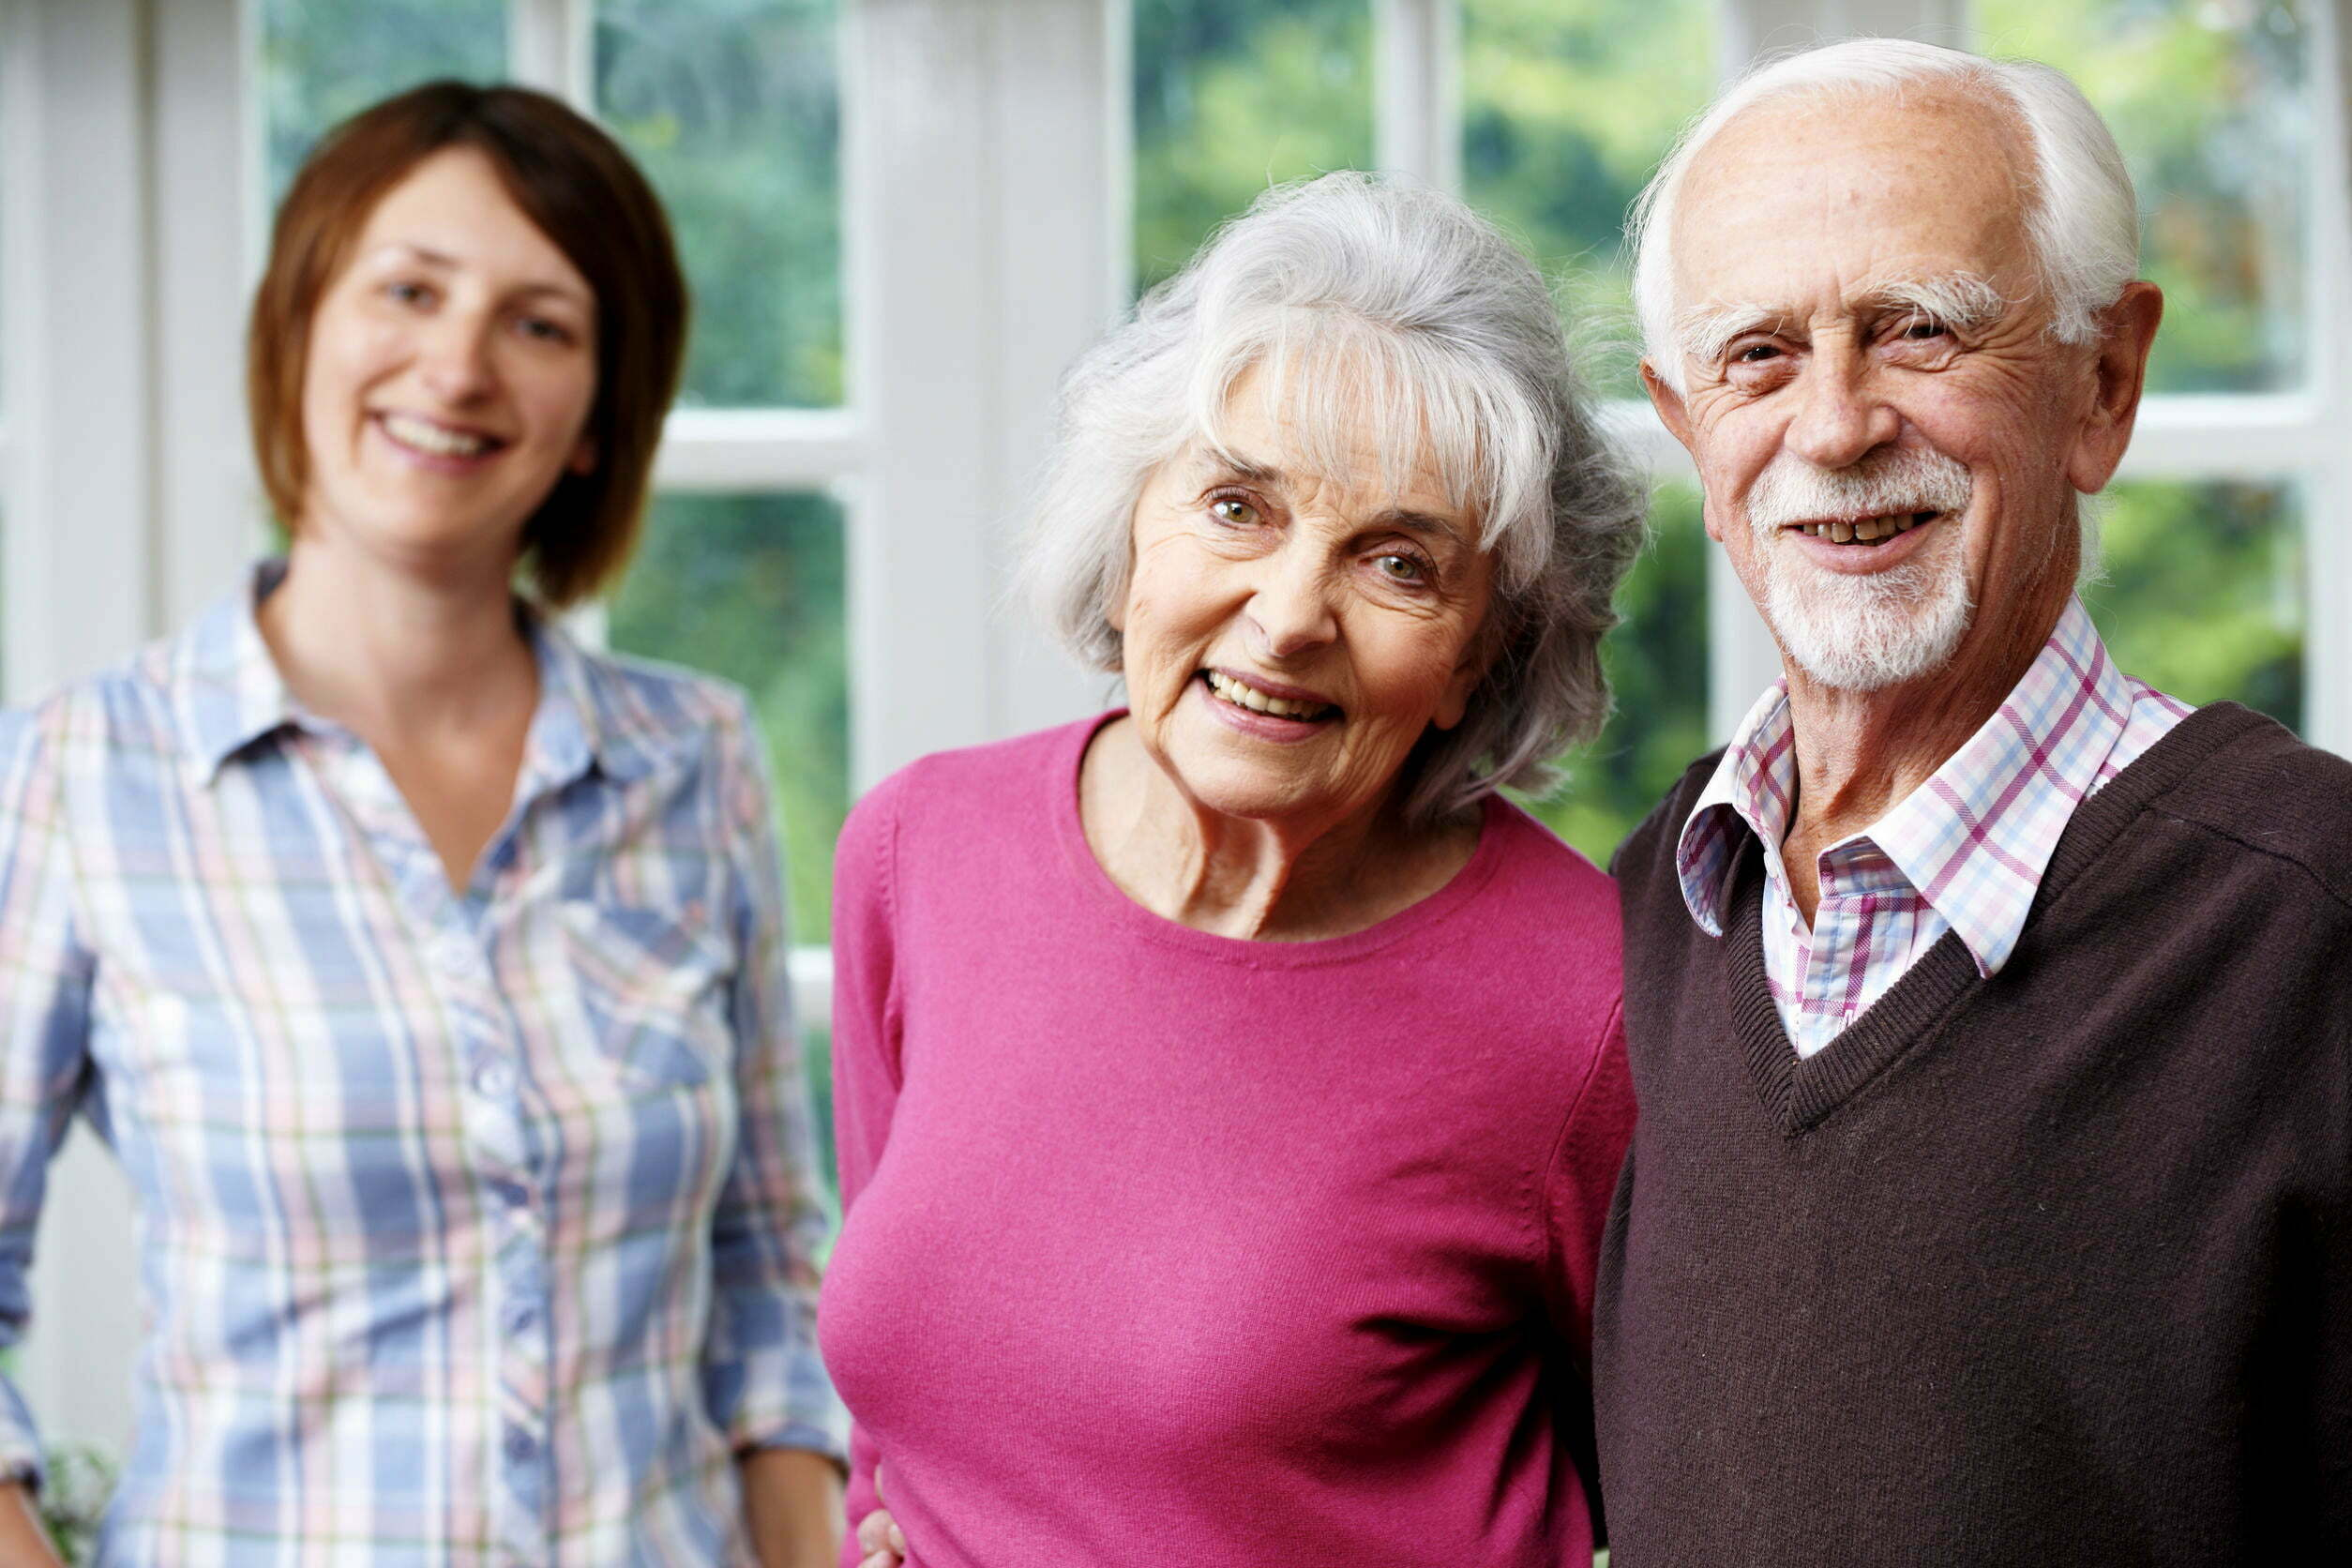 Is home the safest place for aging parents